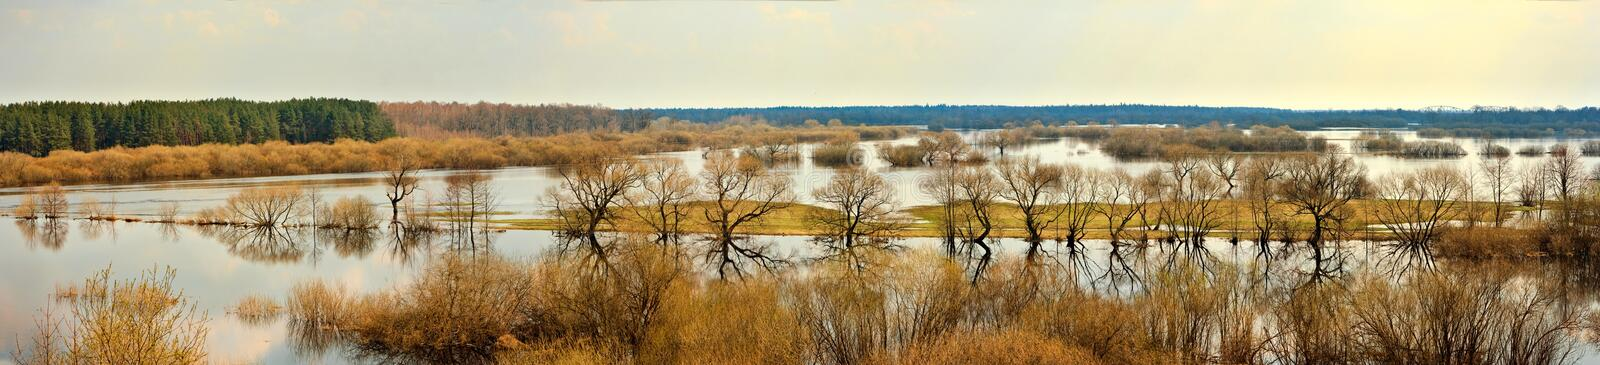 Spring flood royalty free stock images